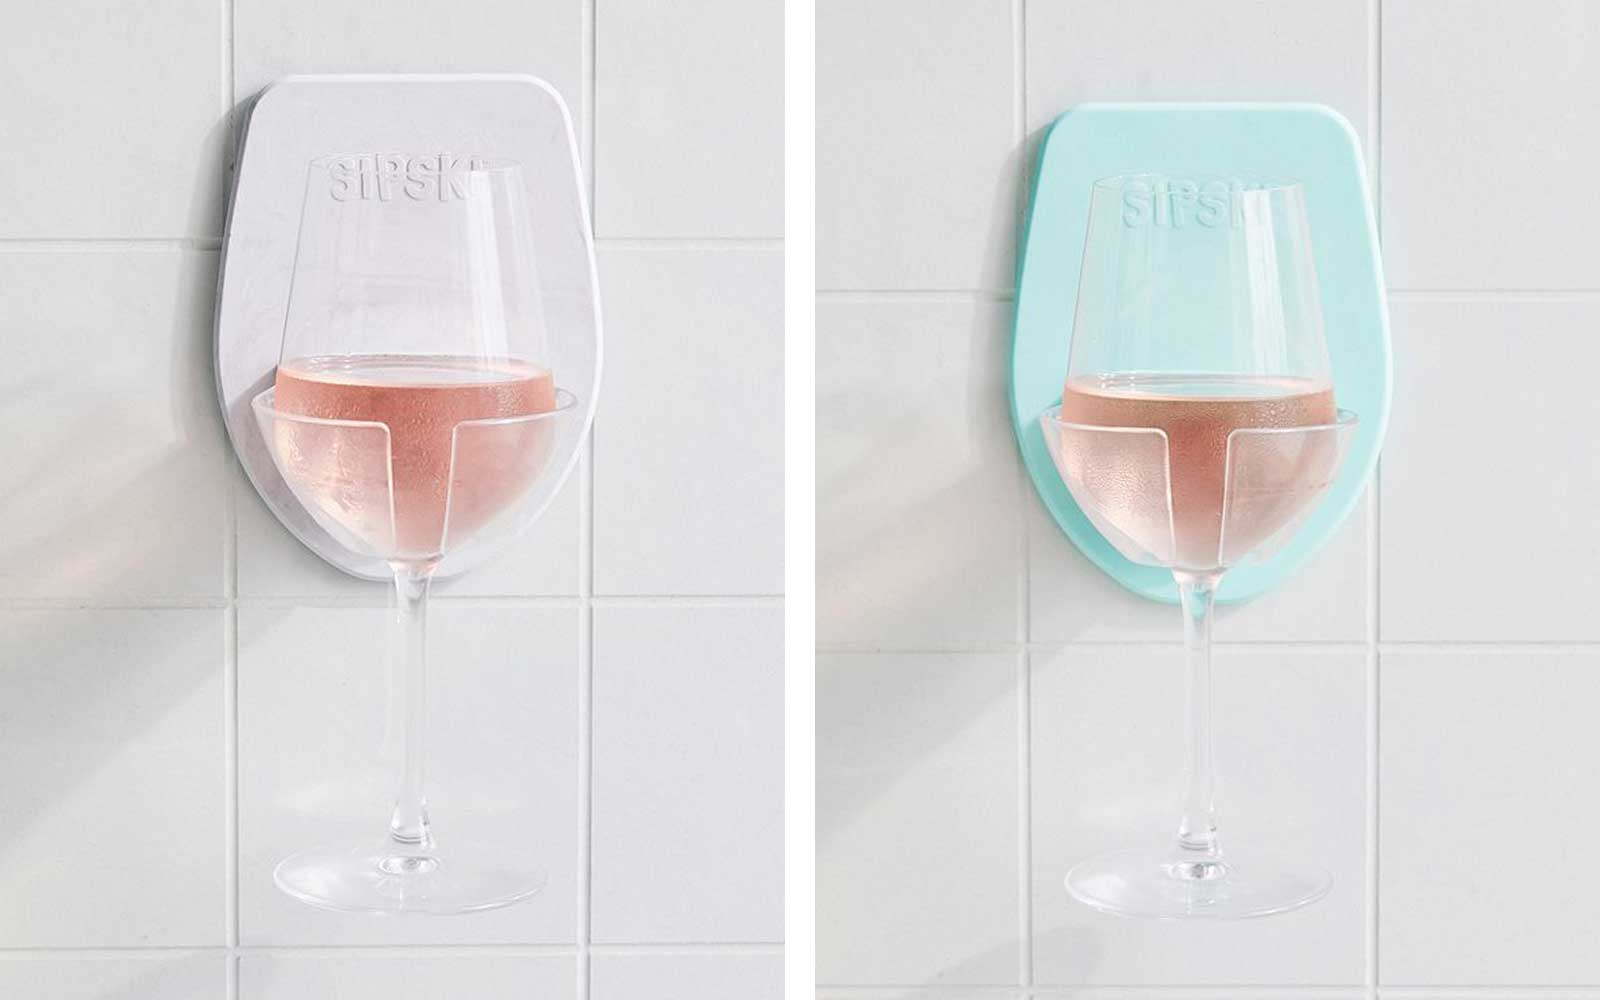 You Can Finally Take Your Wine in the Shower With This Incredible Drink Holder